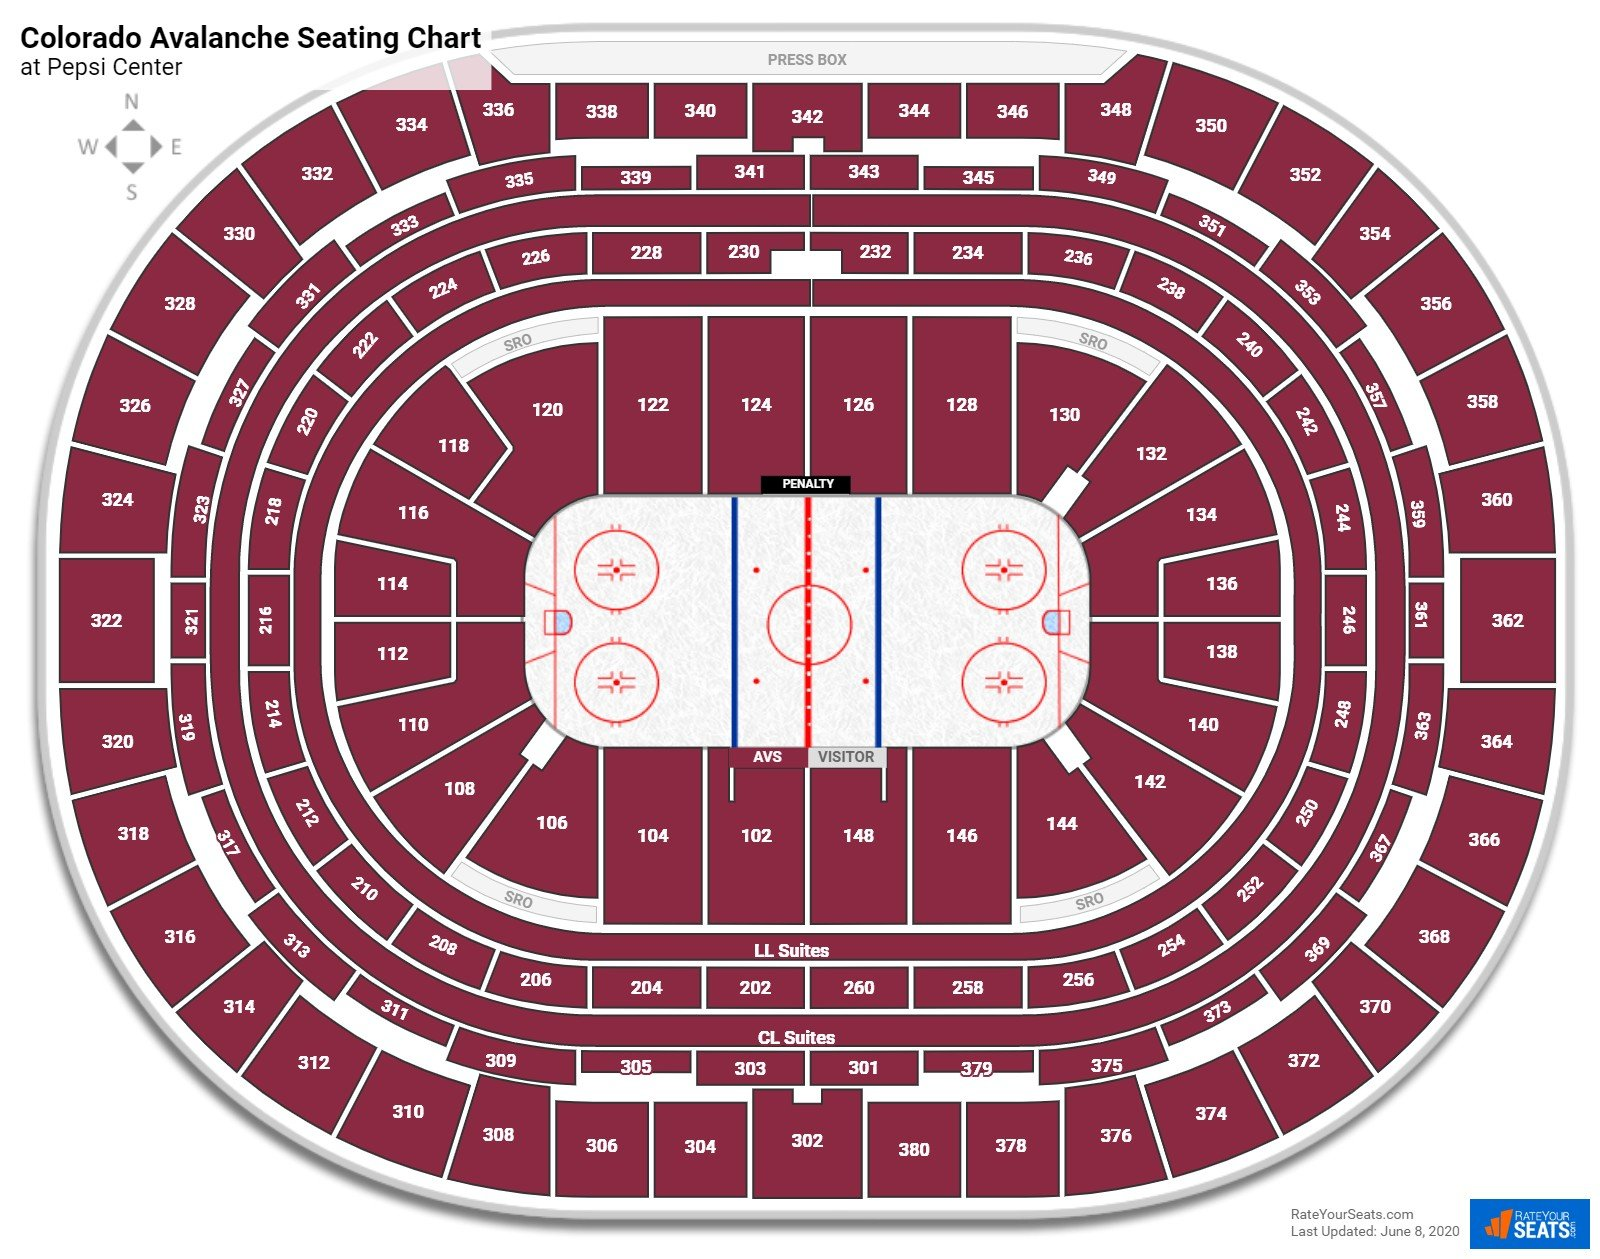 How Many Seats In Section 108 Row 12 At Pepsi Center Rateyourseats Com